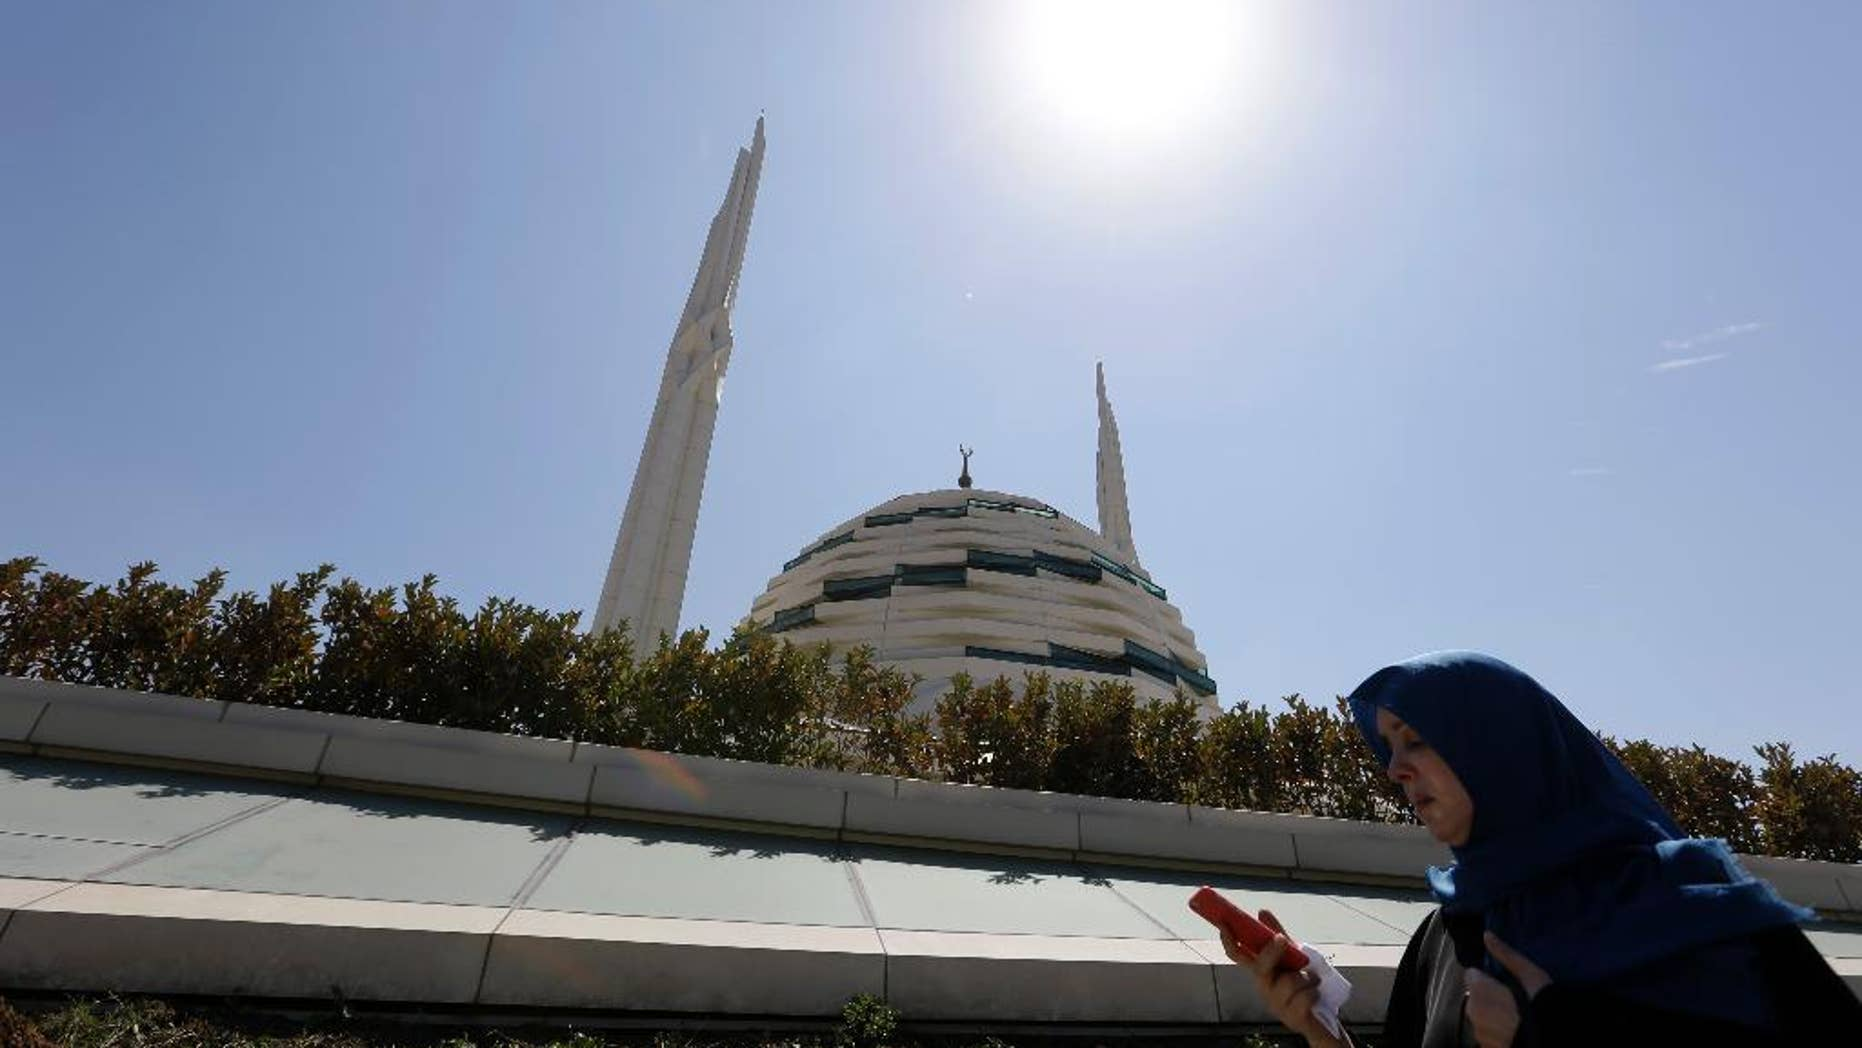 A woman checks her cell phone as she passes outside Marmara University Theological School mosque in Istanbul, Friday, Aug. 19, 2016. Turkey accuses U.S.-based cleric Fethullah Gulen of masterminding the July 15th coup and has launched a massive crackdown on his movement, detaining more than 40,000 people and dismissing tens of thousands from government jobs. (AP Photo/Thanassis Stavrakis)